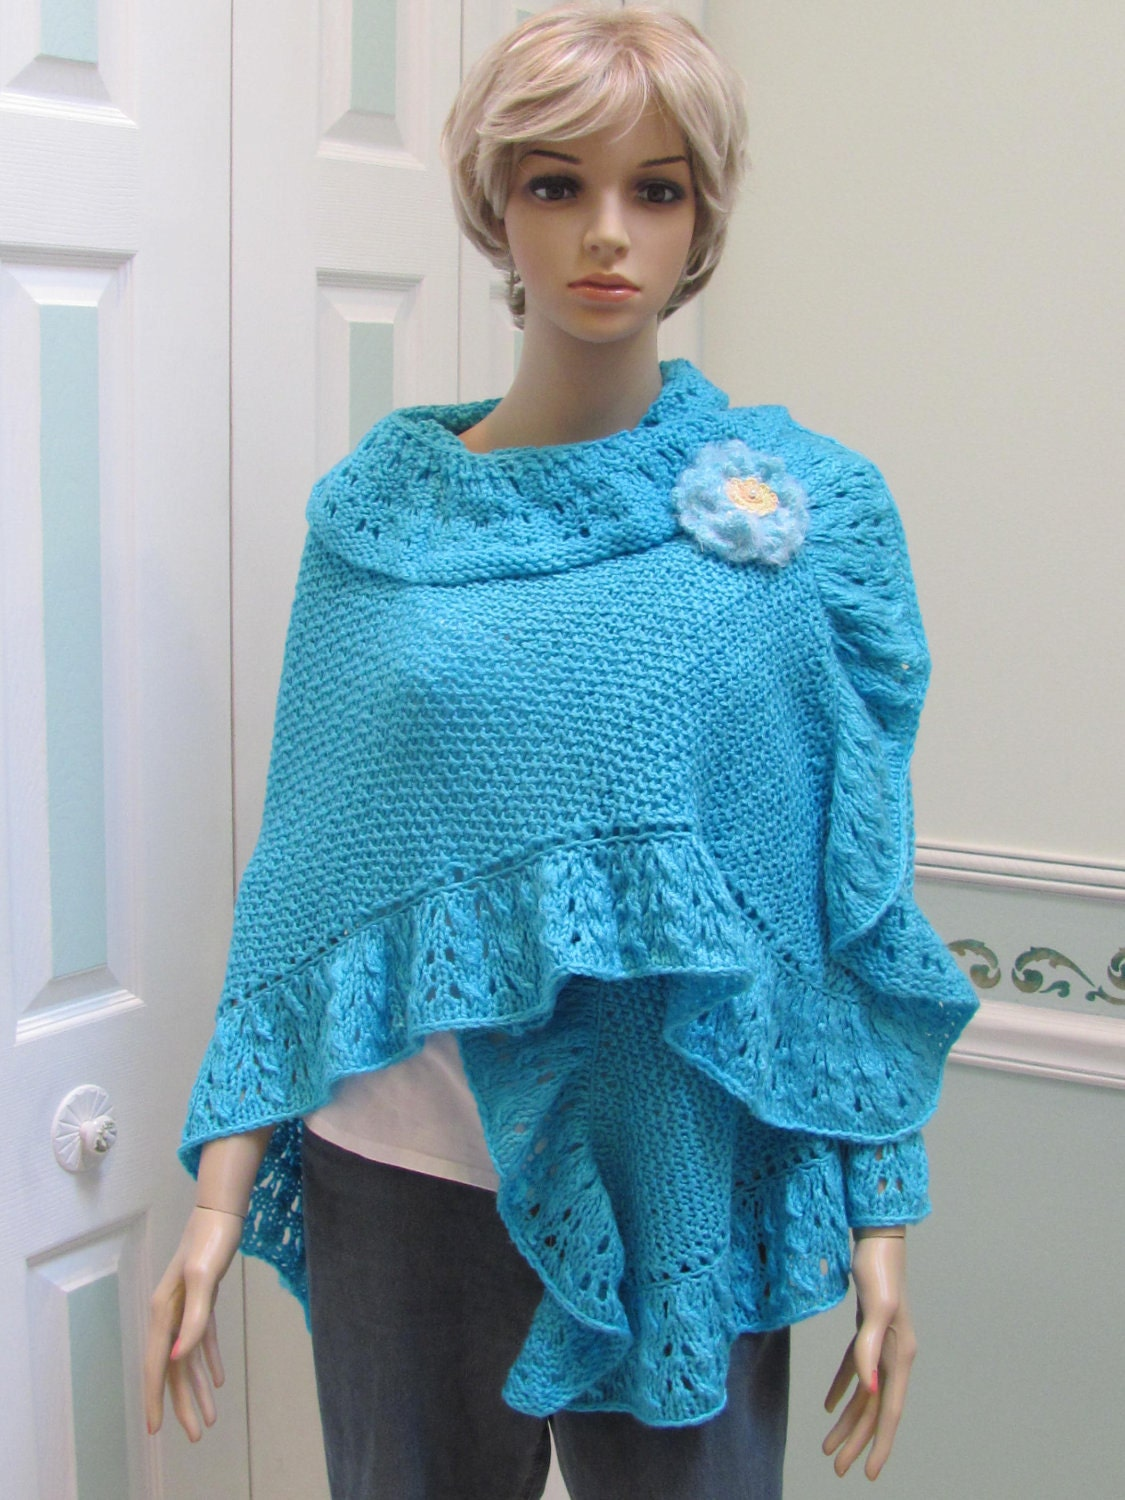 Princess Kate Middleton style shawl in Turquoise by UptownKnits